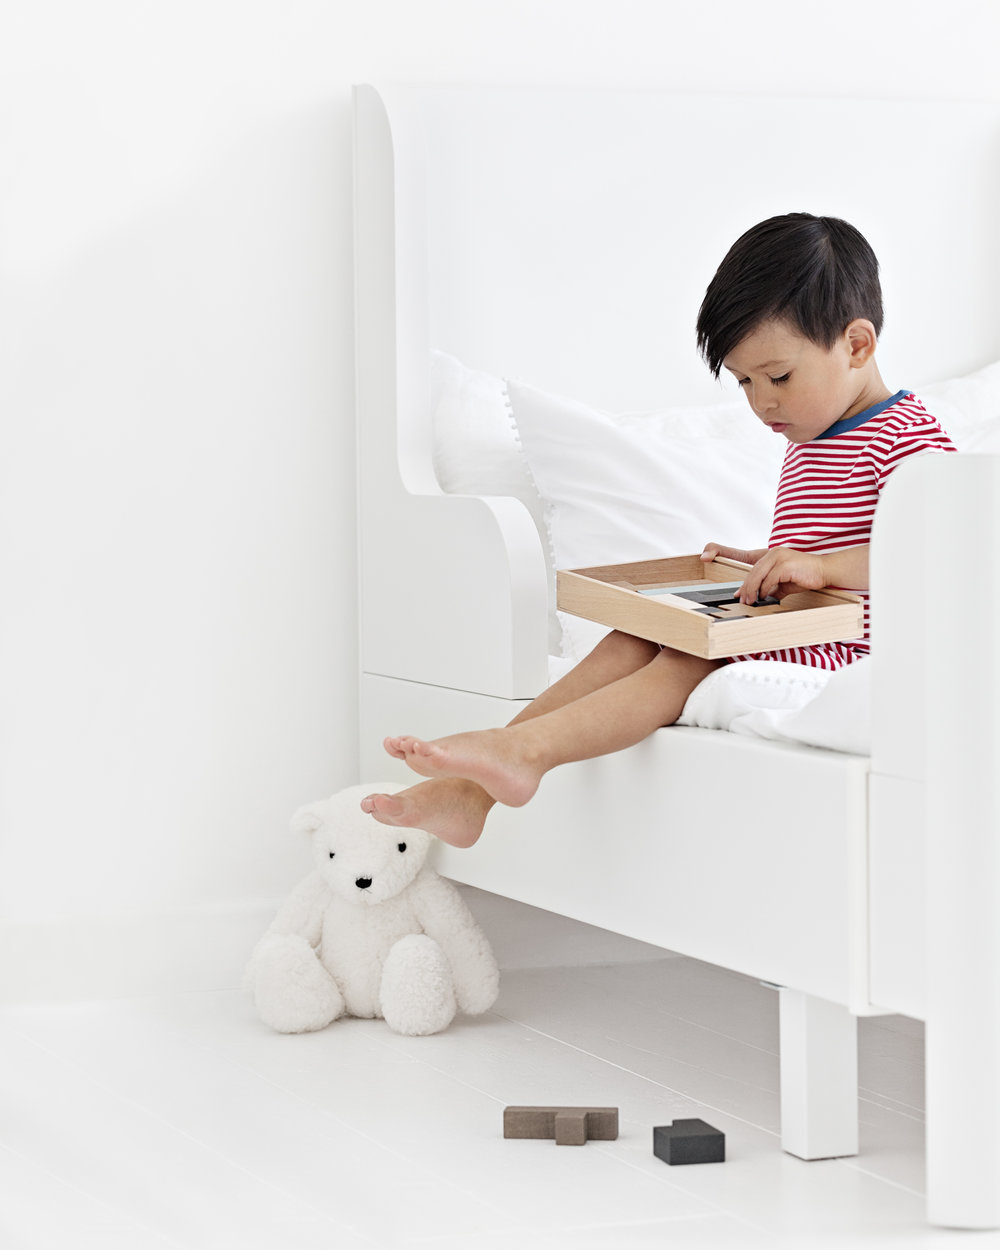 Multi-Pack Pyjamas / White Vintage Bear / Wooden Puzzles from   The Little White Company   | Avignon Bedding from   The White Company